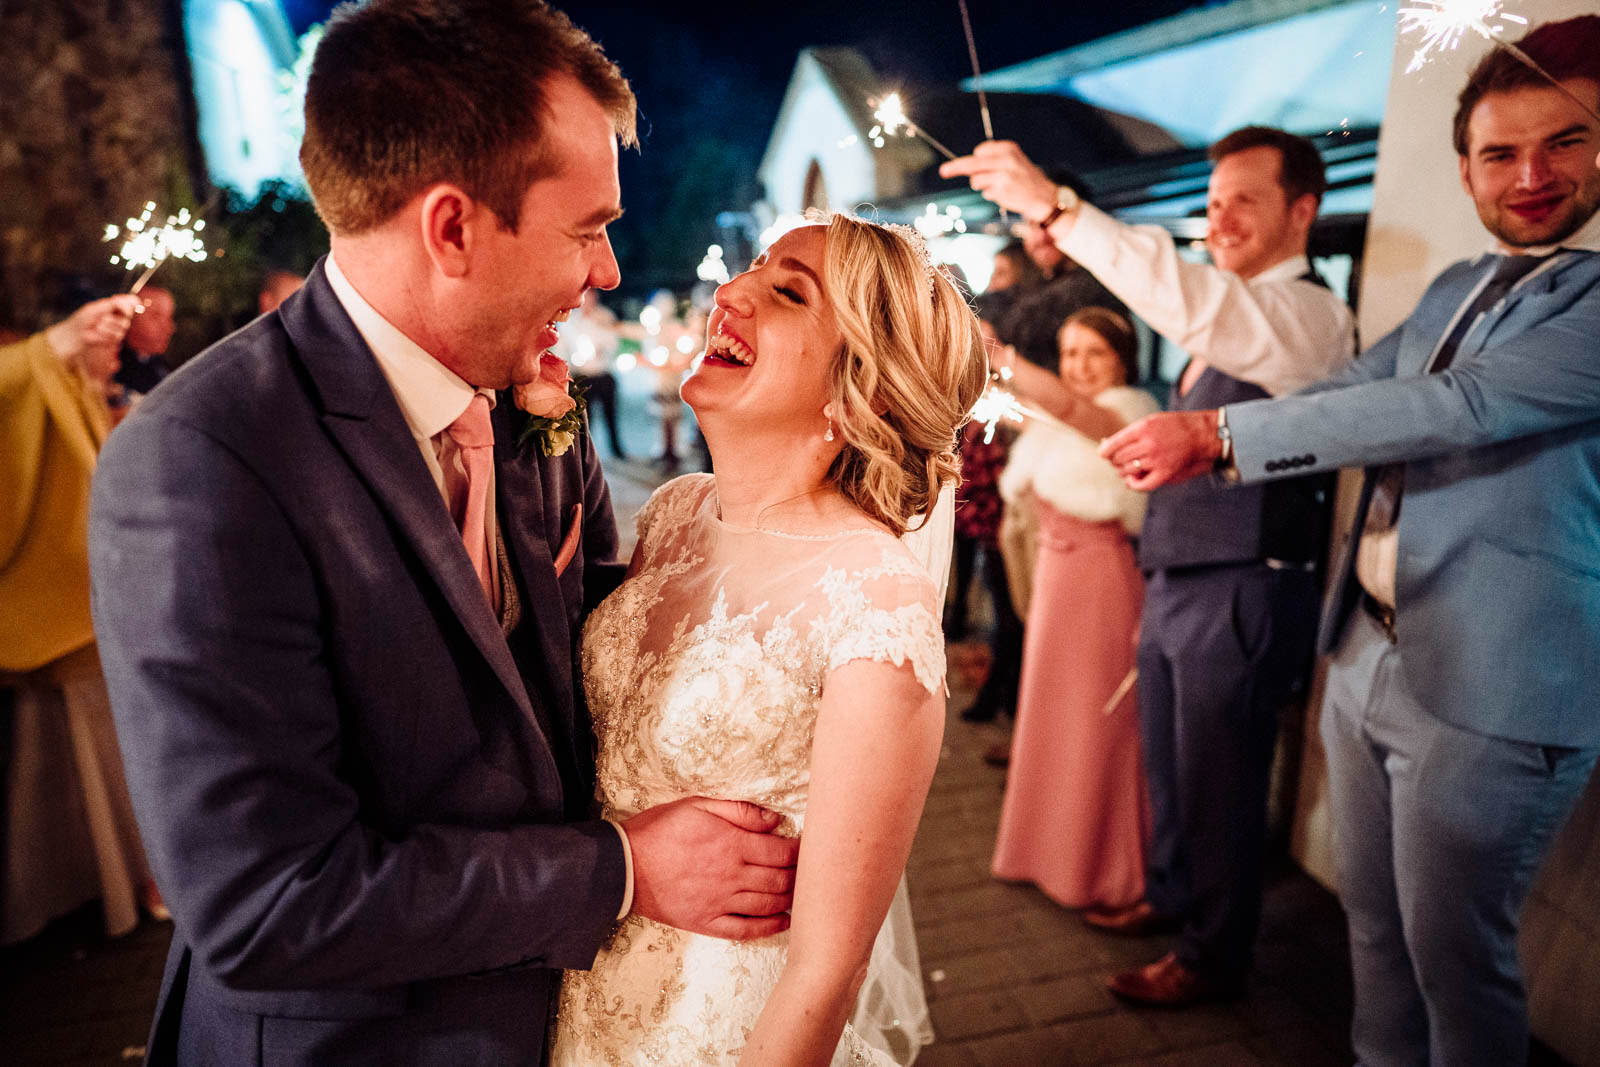 laughing bride and groom during a sparkler exit at the King Arthur Hotel in Gower, Swansea, South Wales